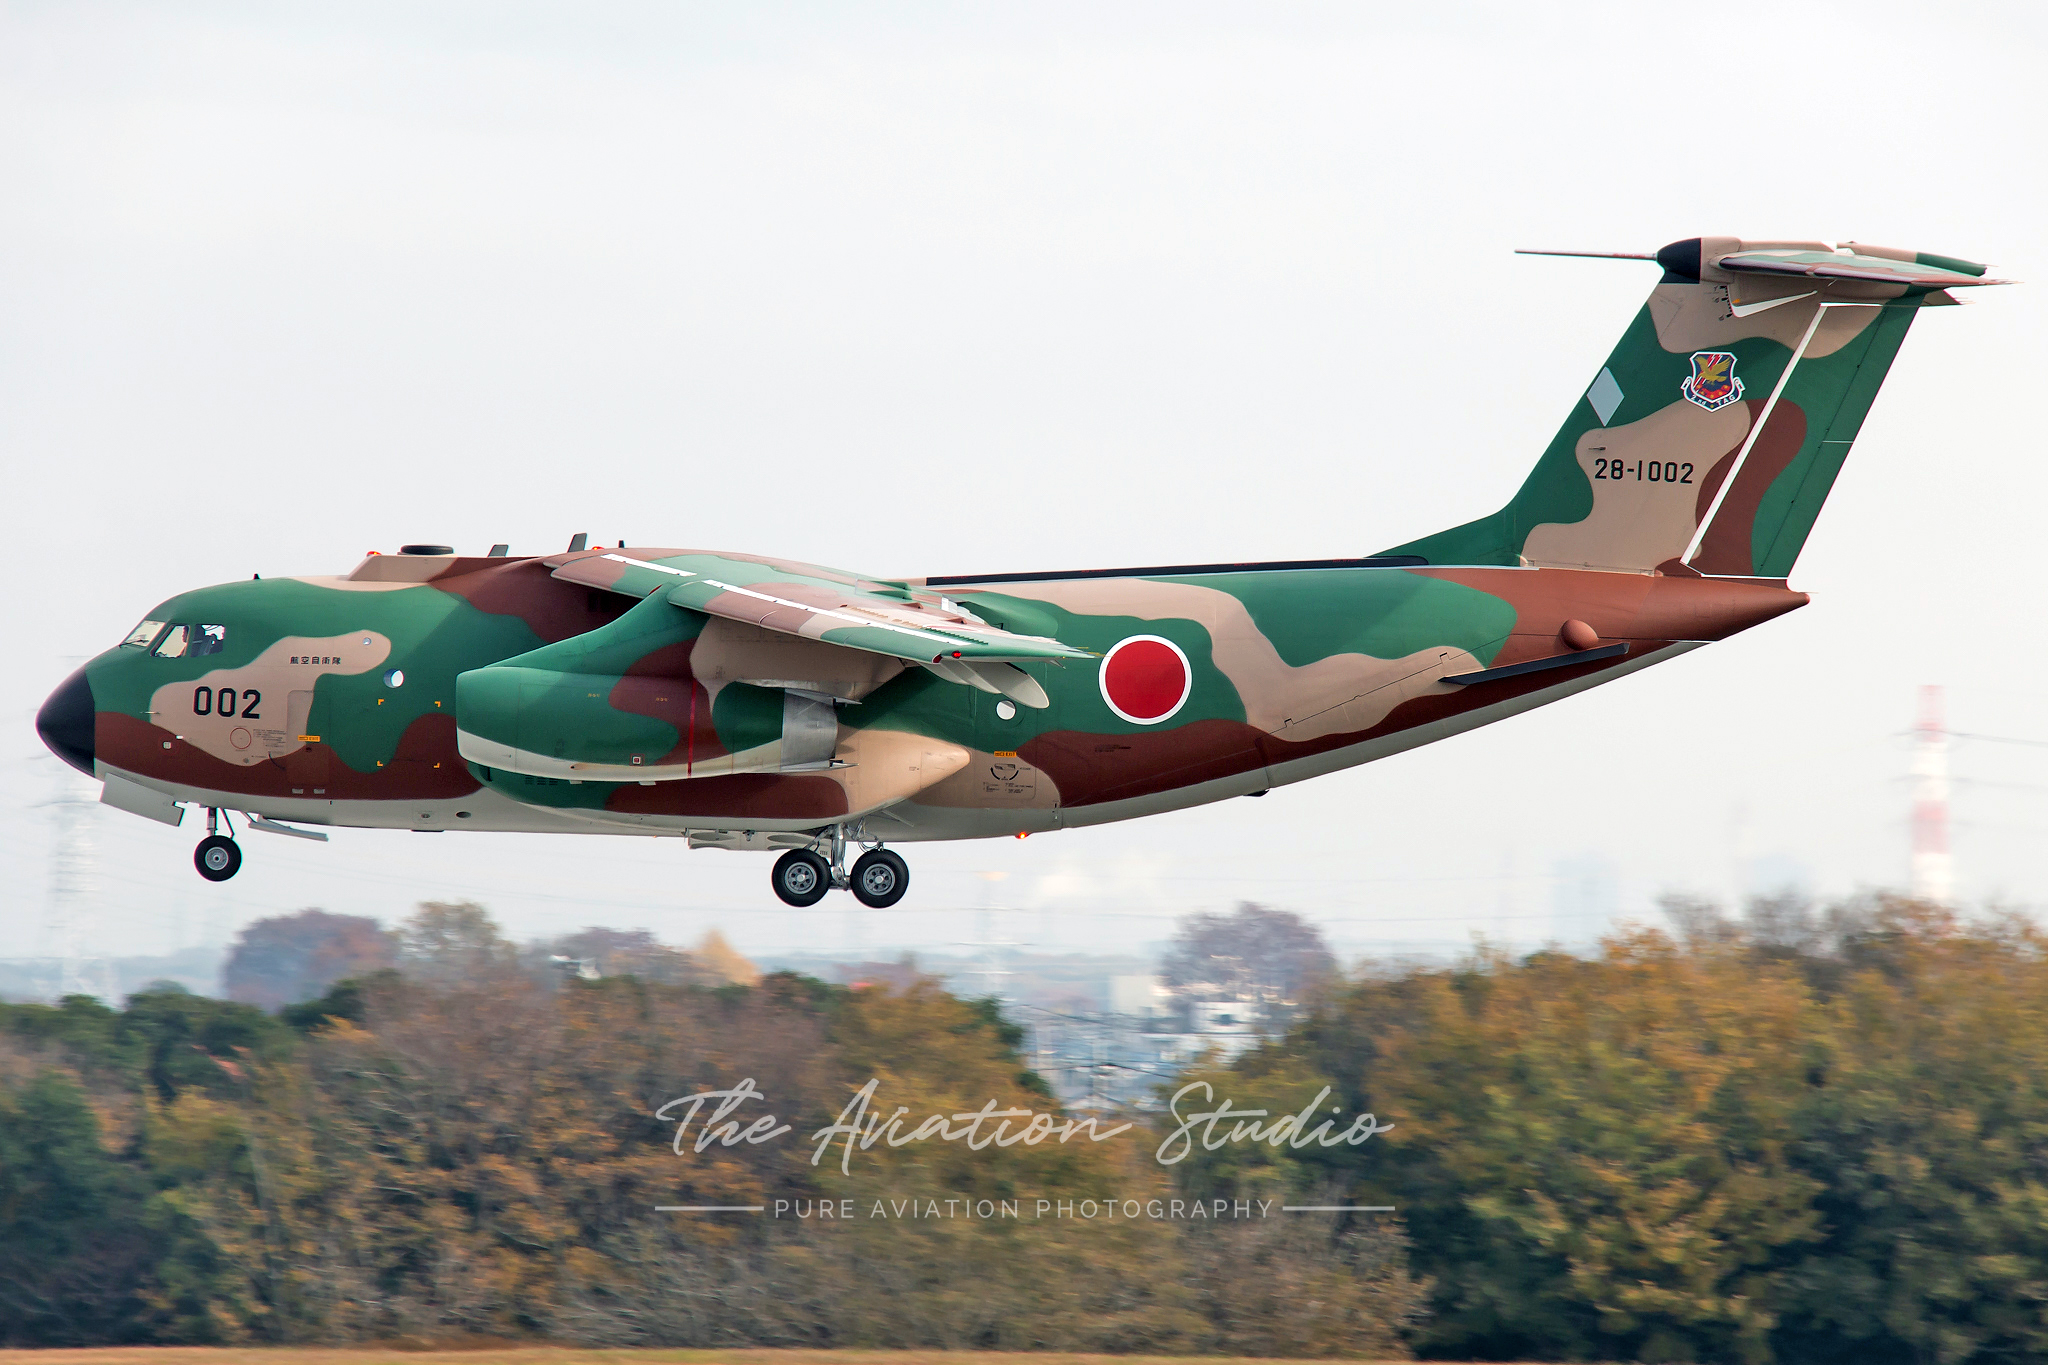 Kawasaki C-1 28-1002 on final at Iruma (Image: Brock Little)